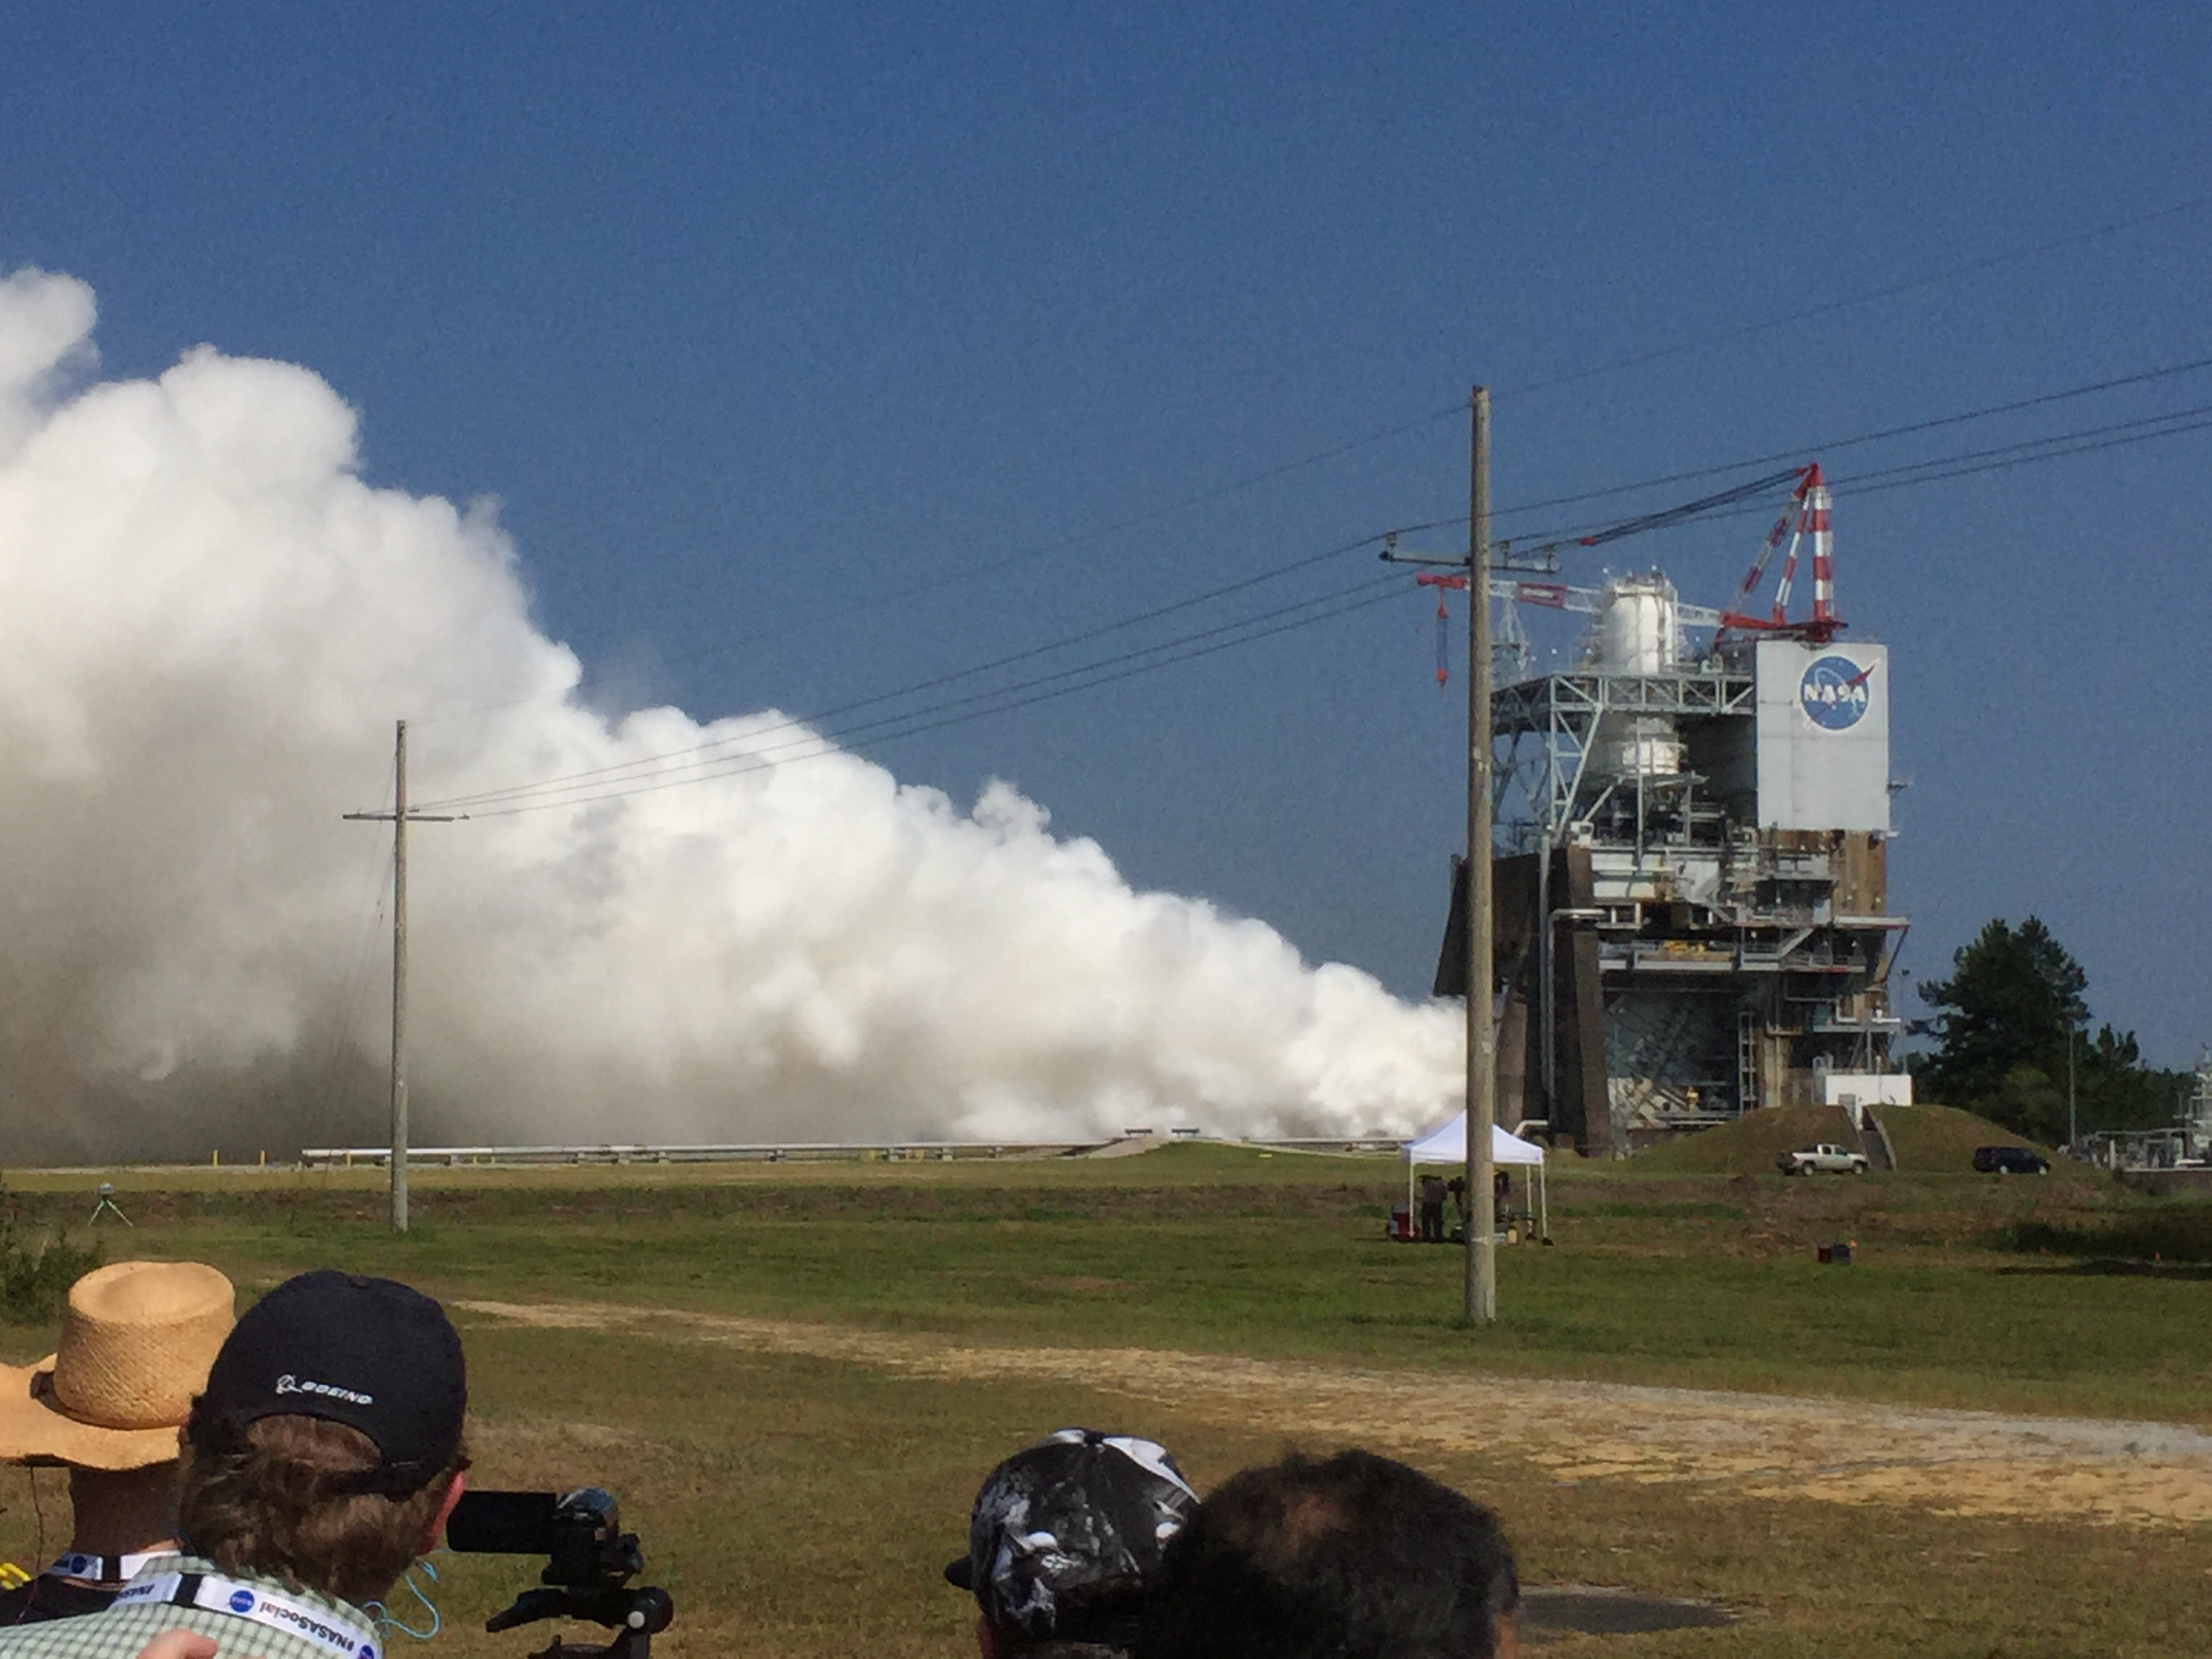 A white cloud emerges from the A-1 engine test stand